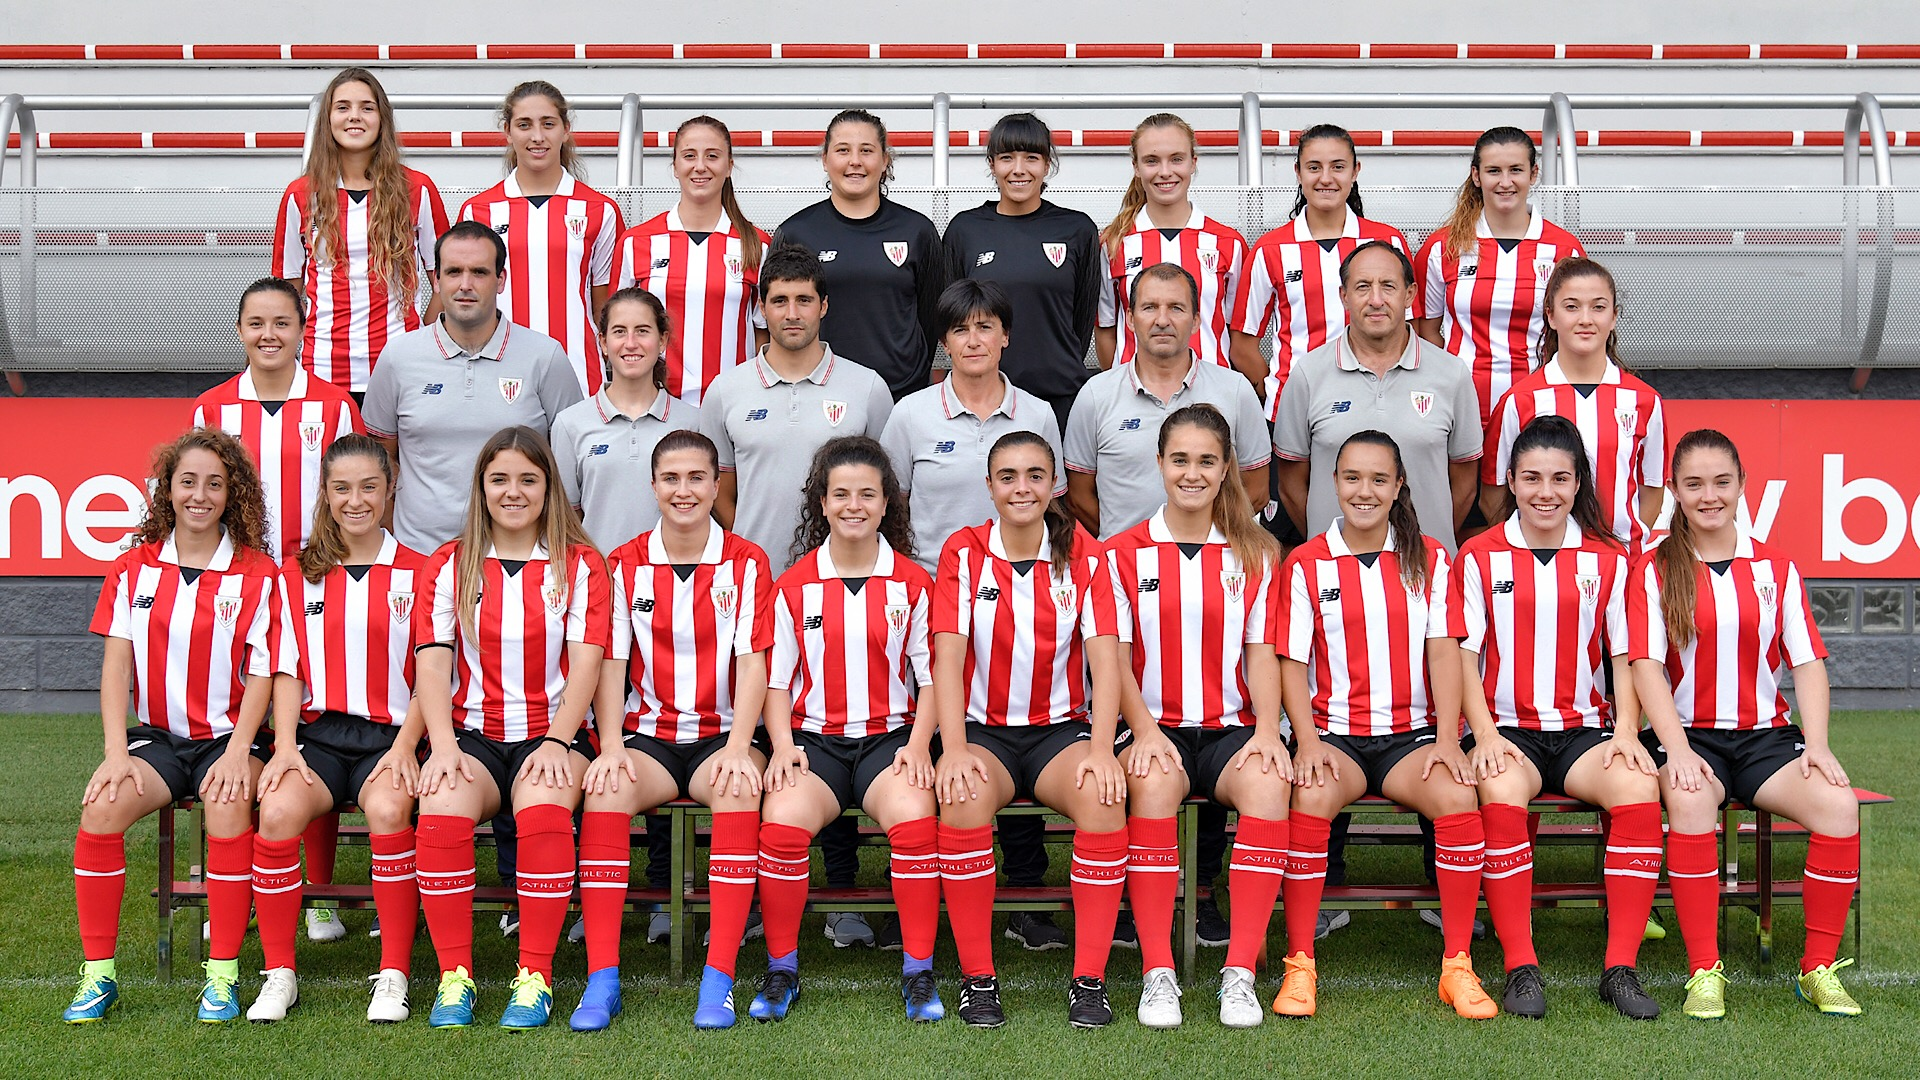 El Athletic Club B, a la final de la Copa Vasca Femenina